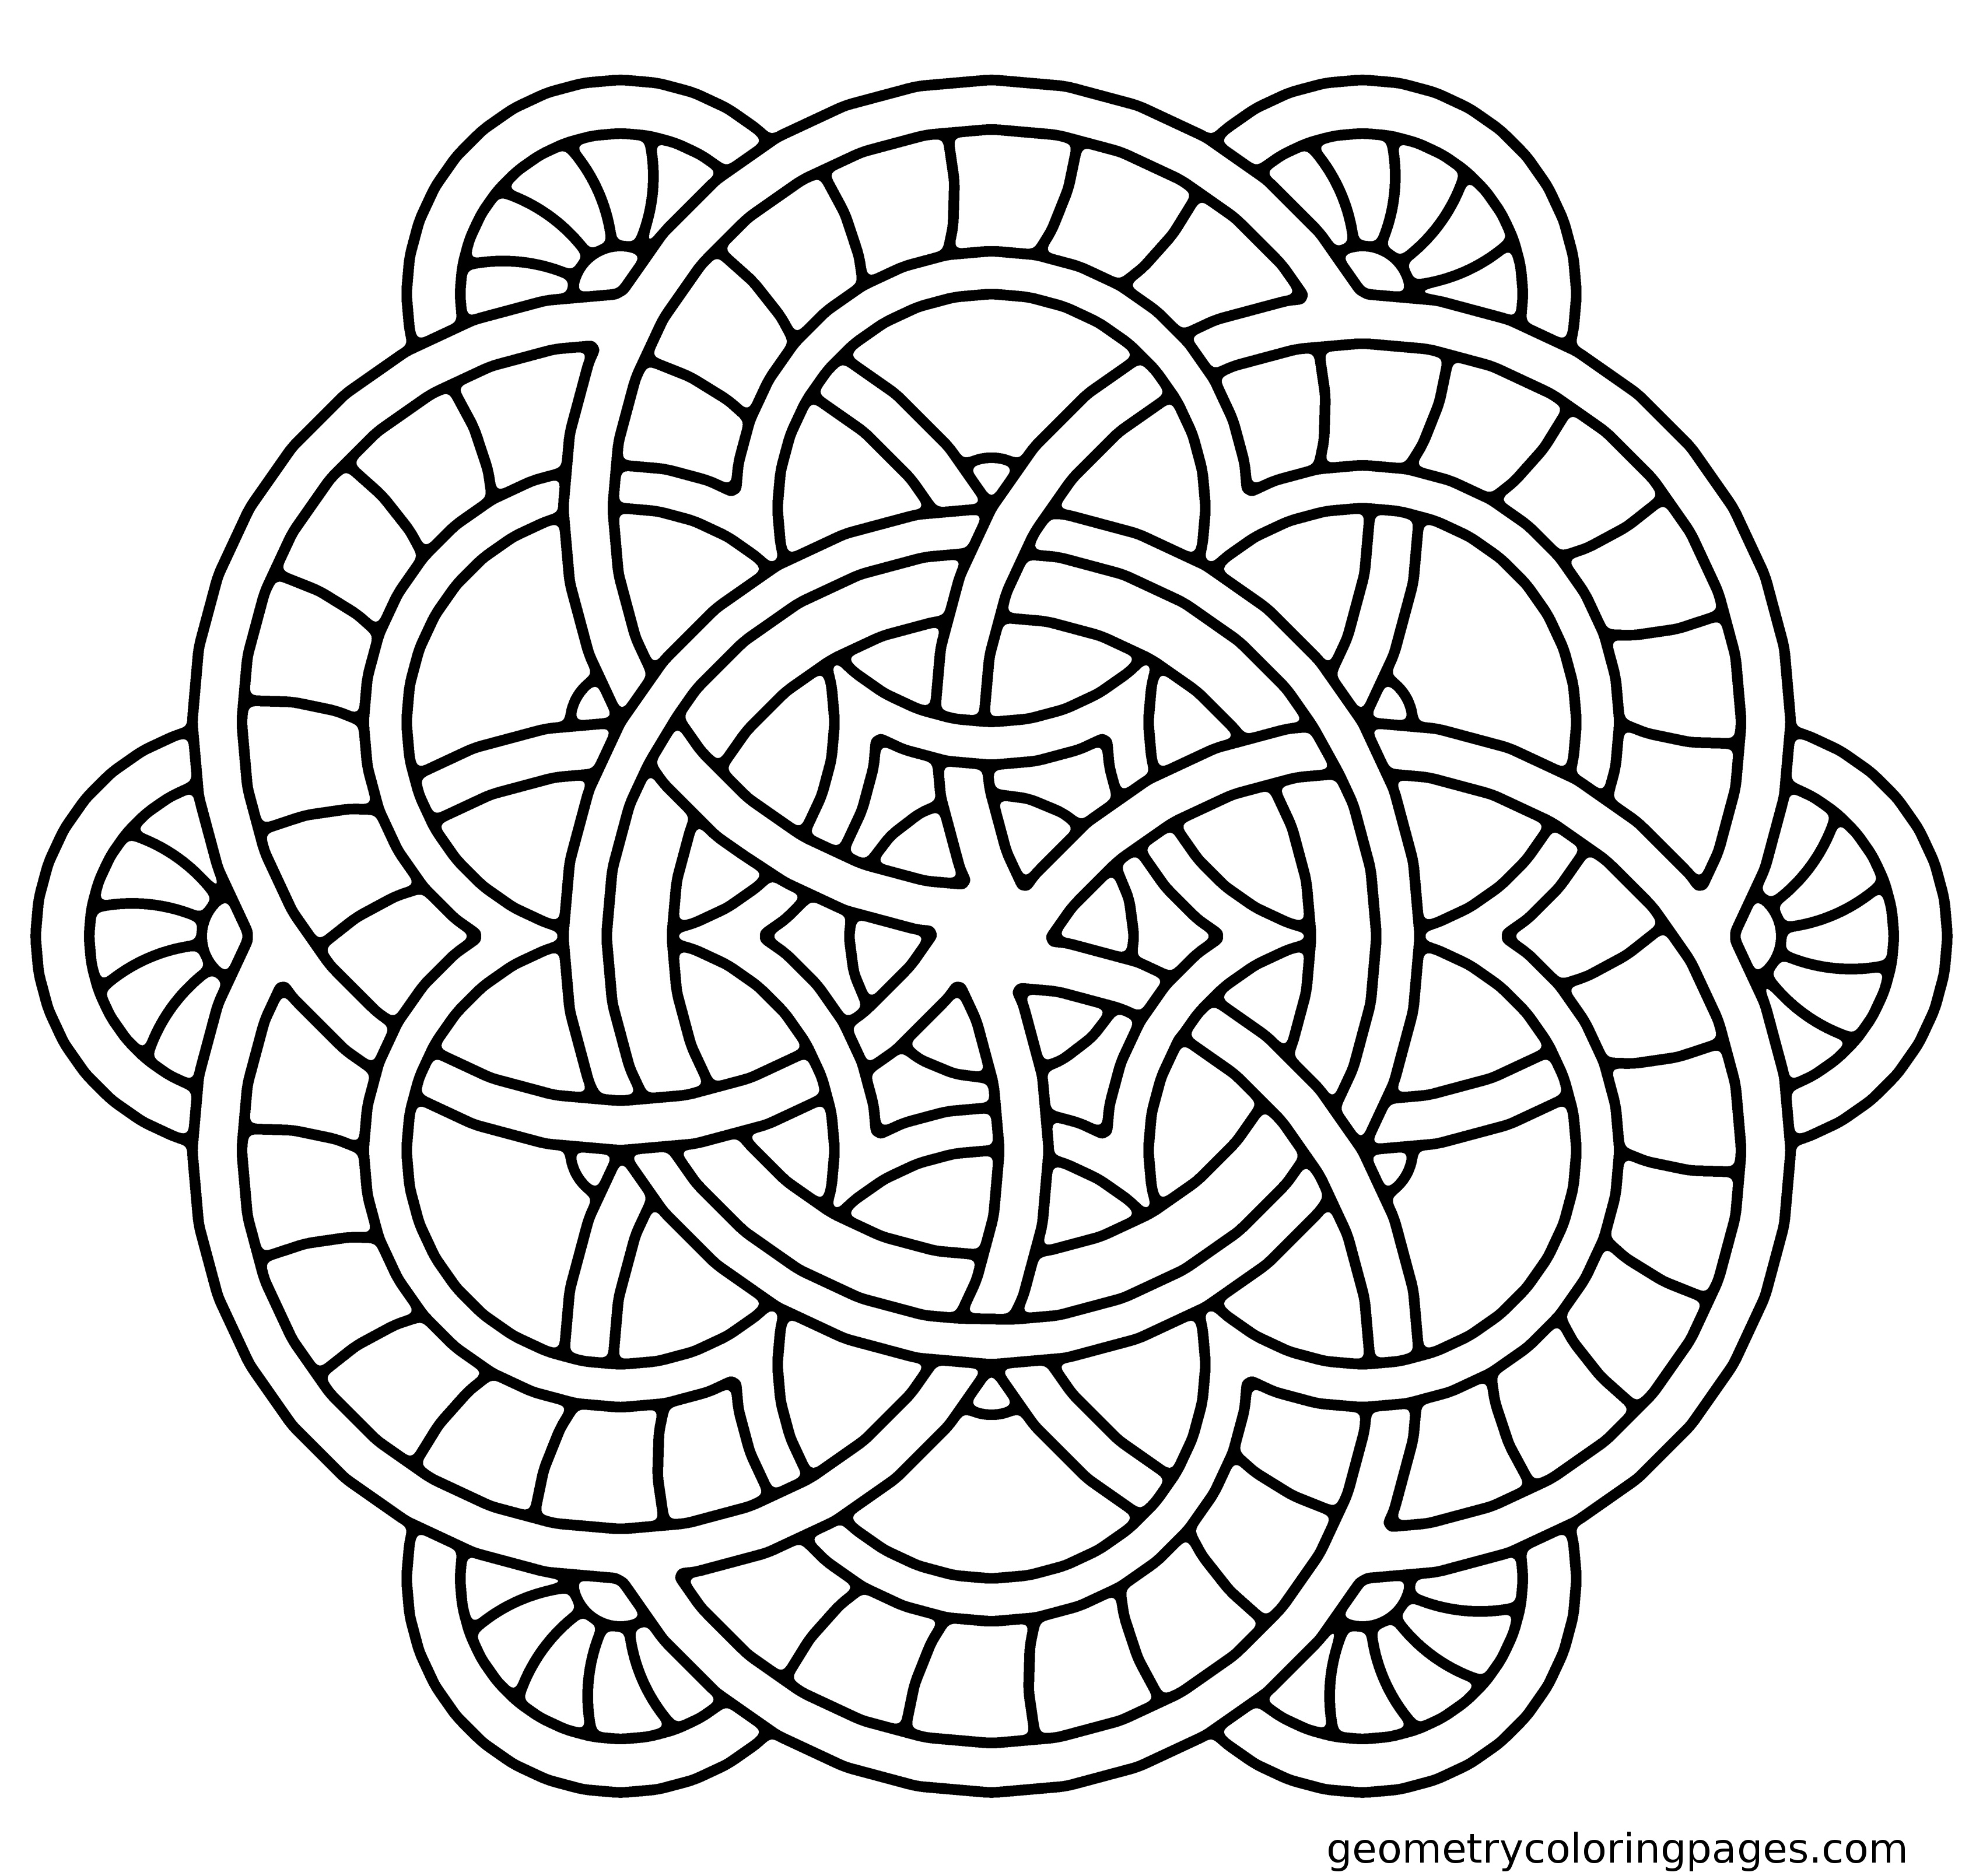 simple mandalas to color simple mandala coloring pages download and print for free color simple mandalas to